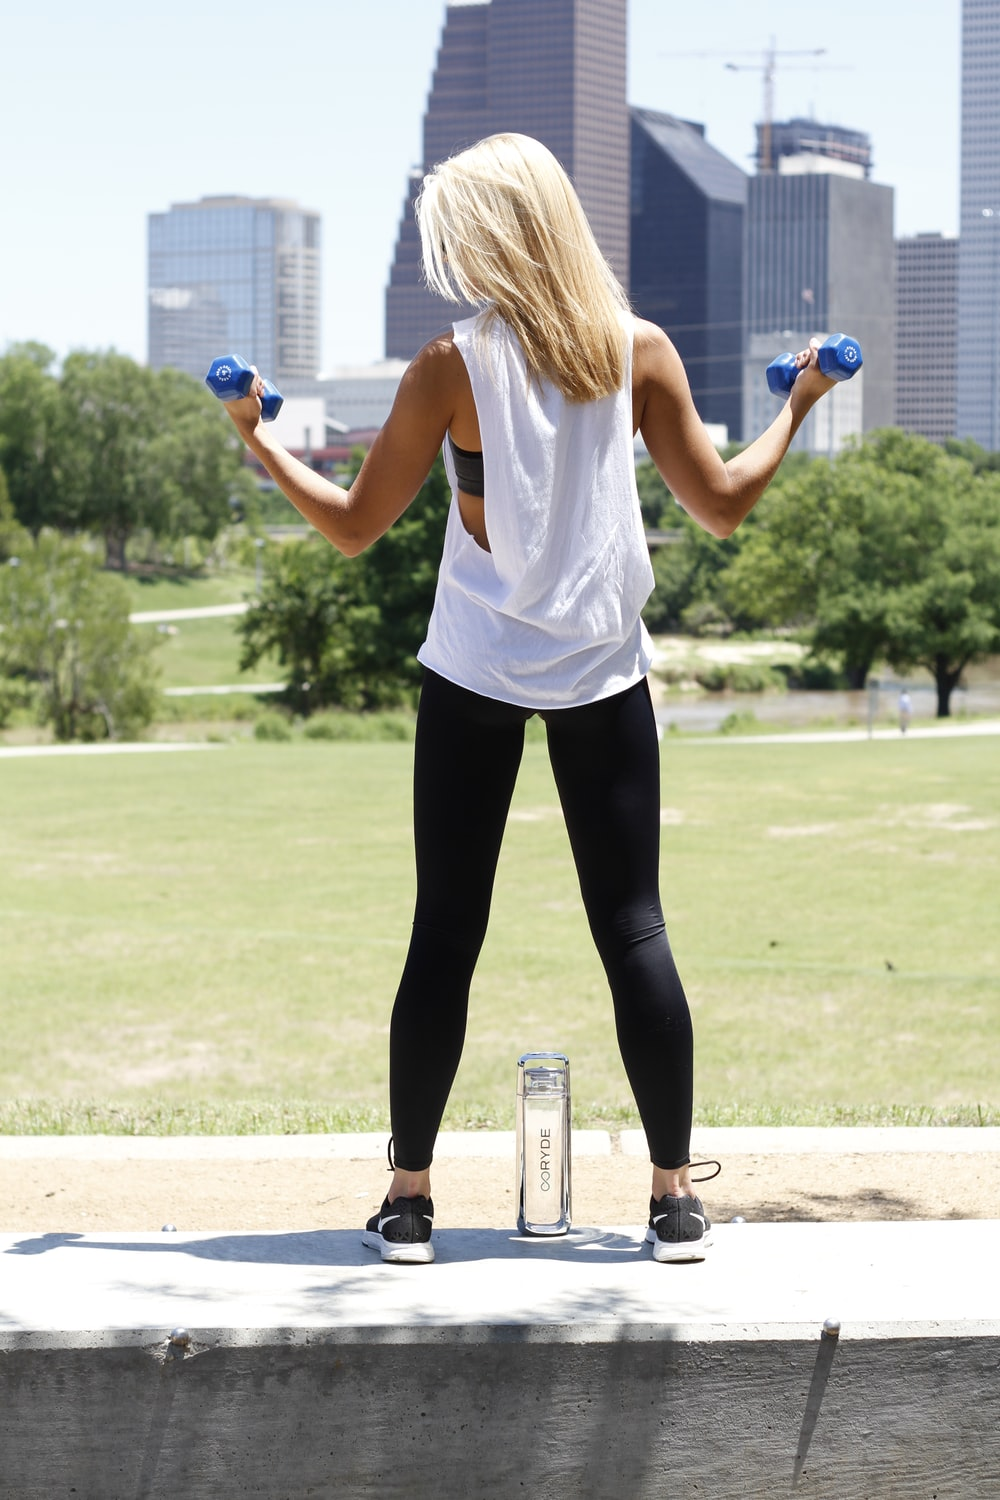 woman carrying blue dumbbells